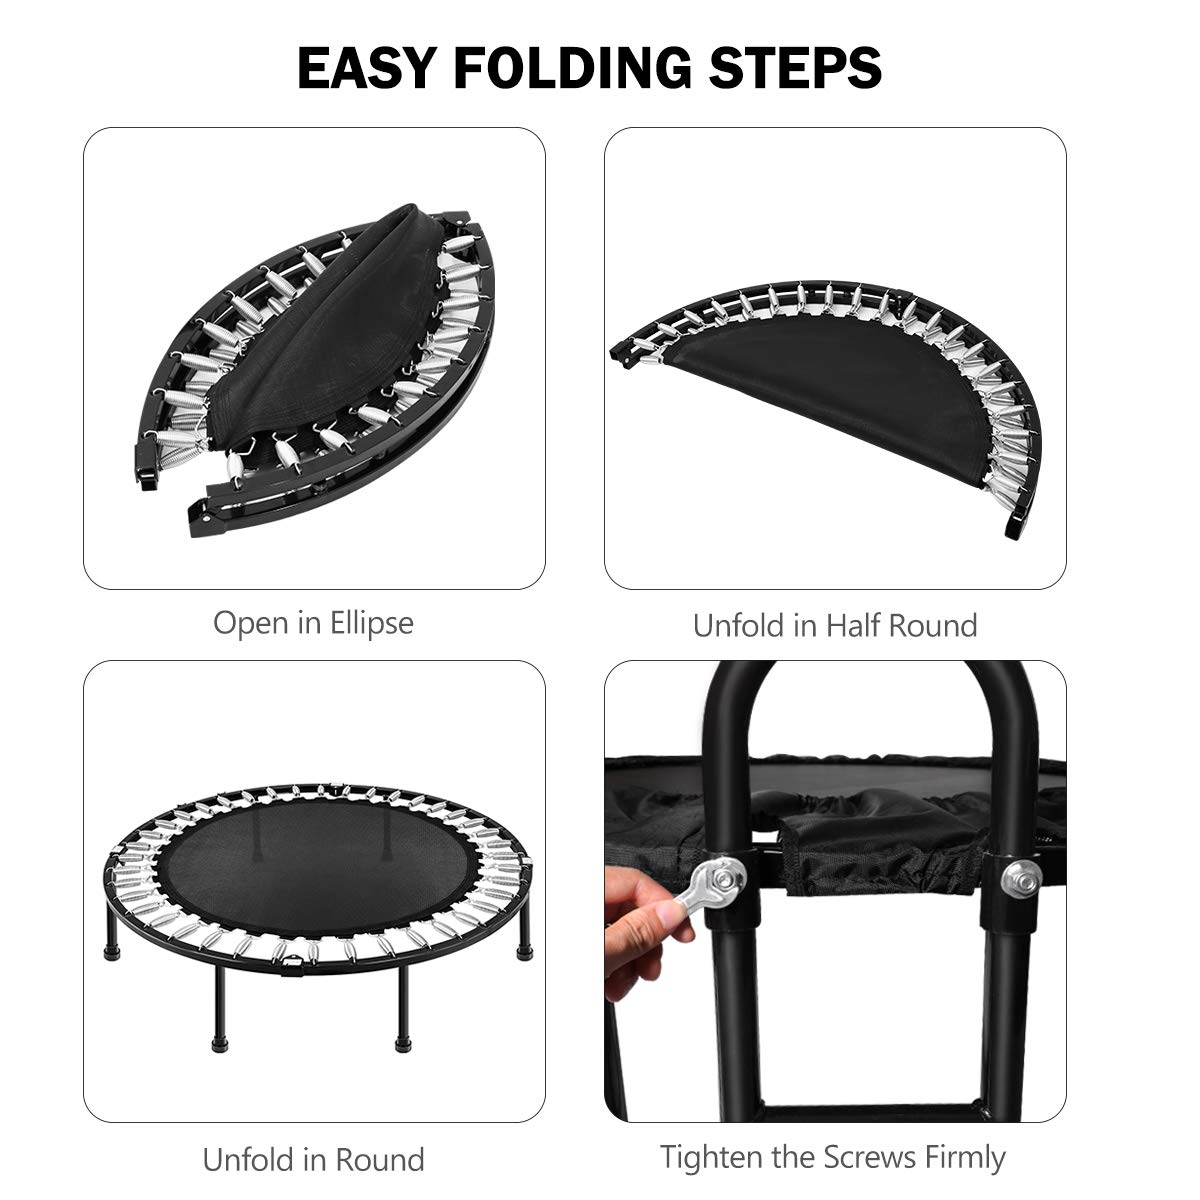 MOVTOTOP 48 40 Inch Indoor Trampoline, Folding Mini Trampoline with Adjustable Handrail and Safety Pad, Exercise Rebounder for Kids Adults-Black (40 Inch-Foldable) by MOVTOTOP (Image #5)